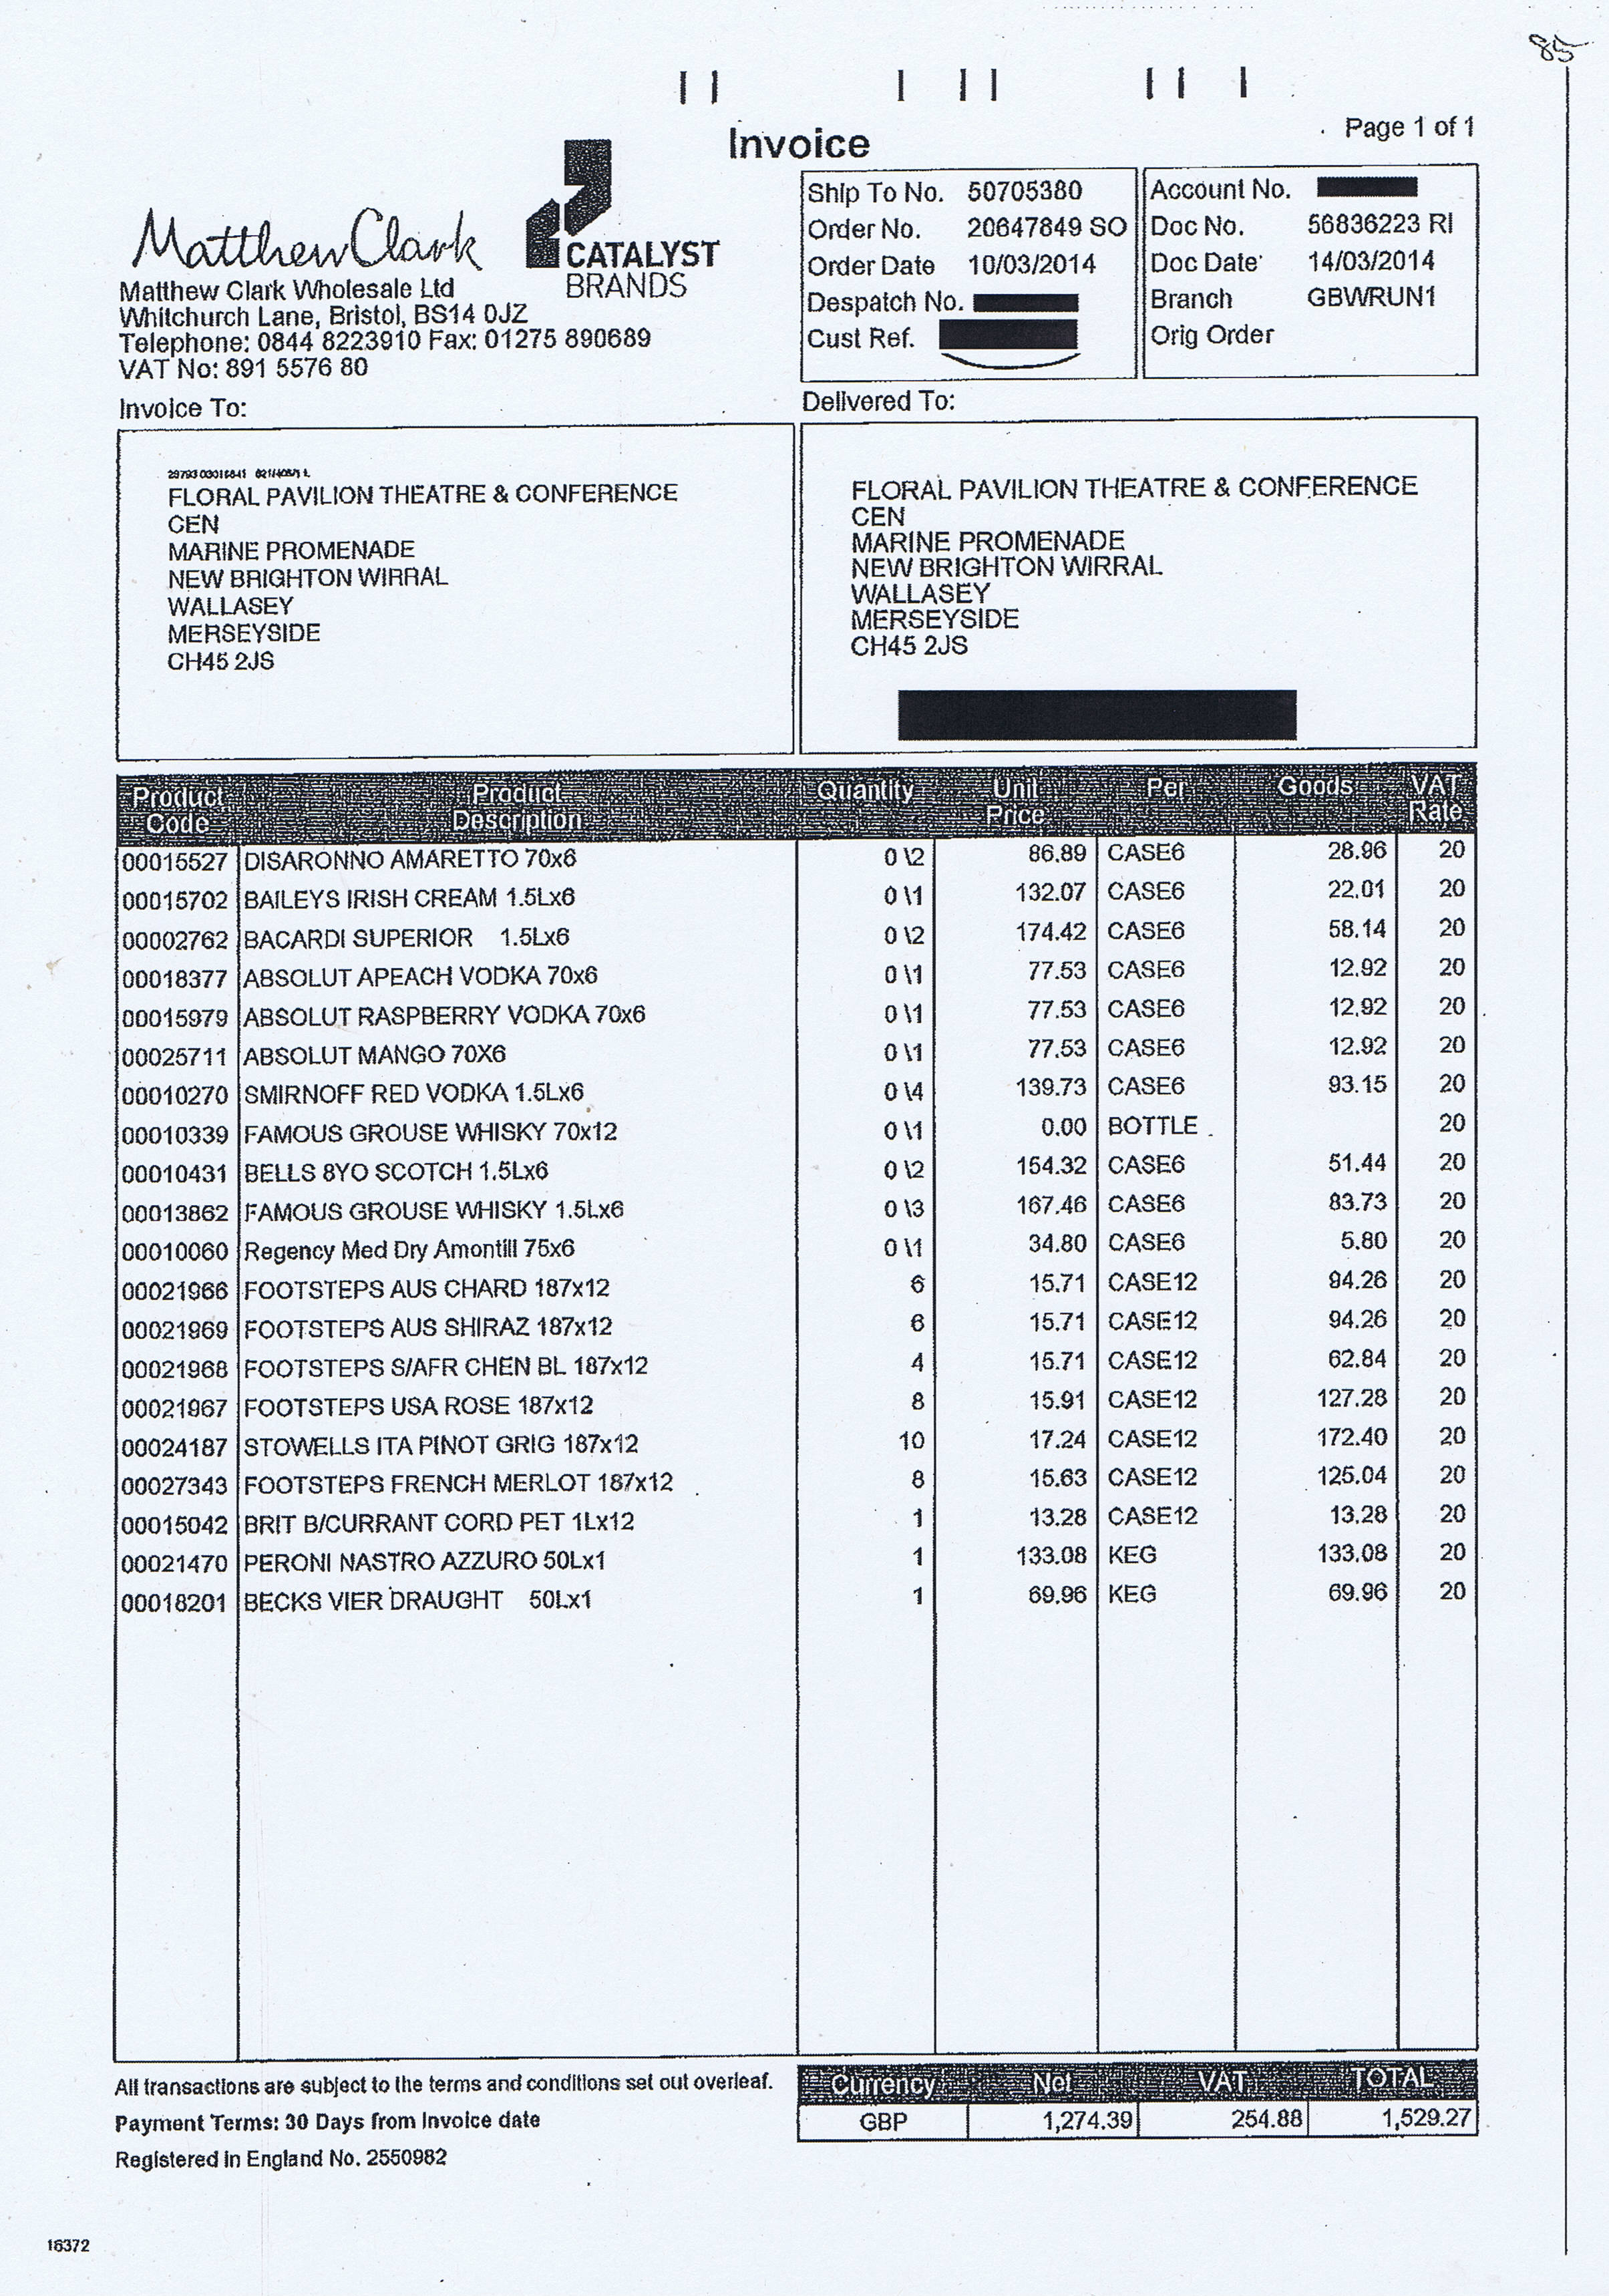 Wirral Council invoice 85 Matthew Clark Wholesale Ltd £1529.27